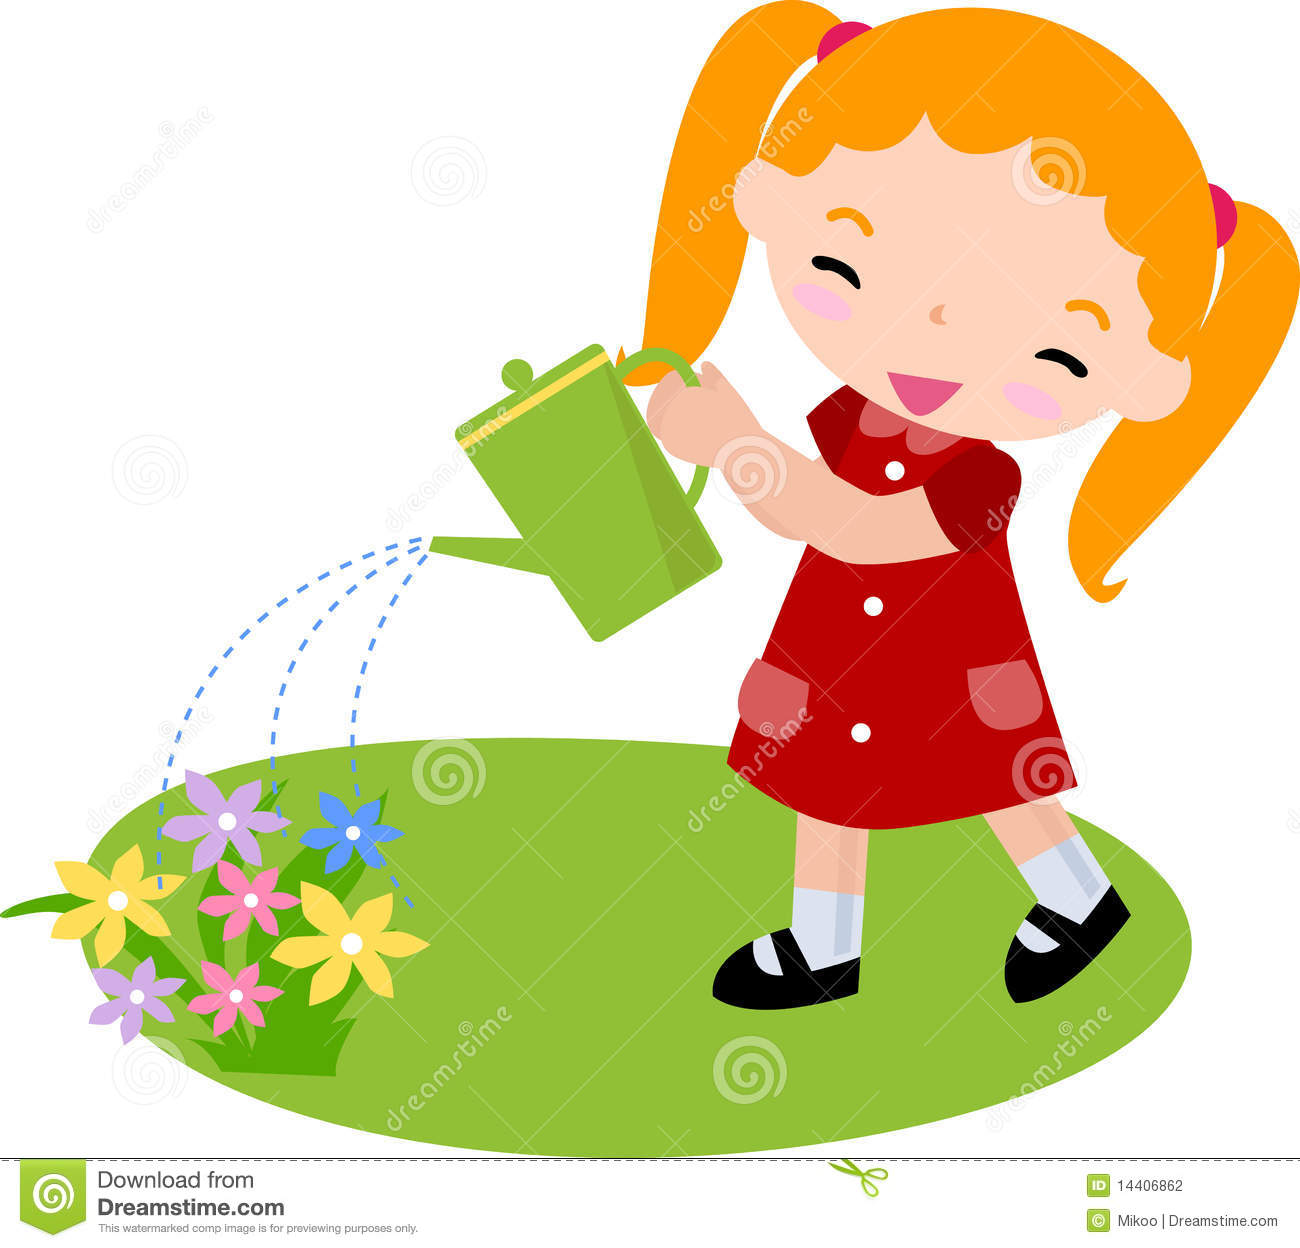 cute little girl watering flowers -illustration art.